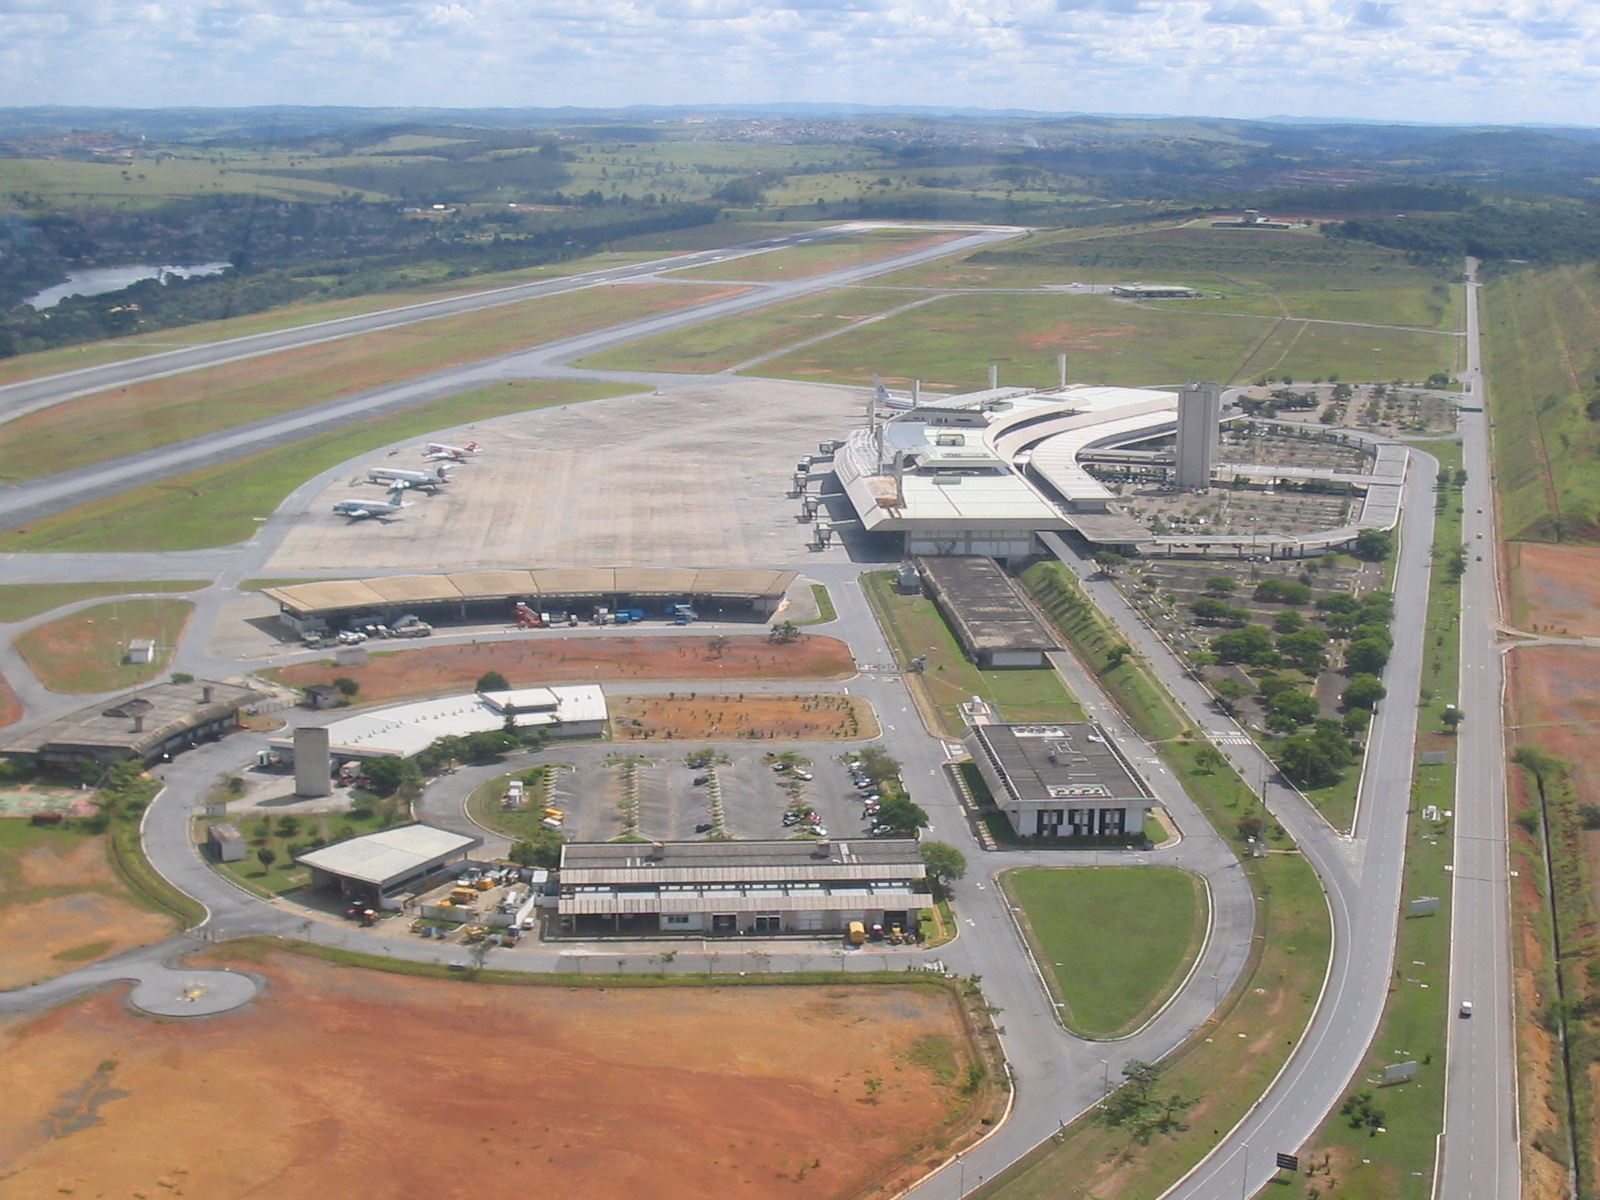 Brazil's Infraero refuses to inject capital into Confins airport operator